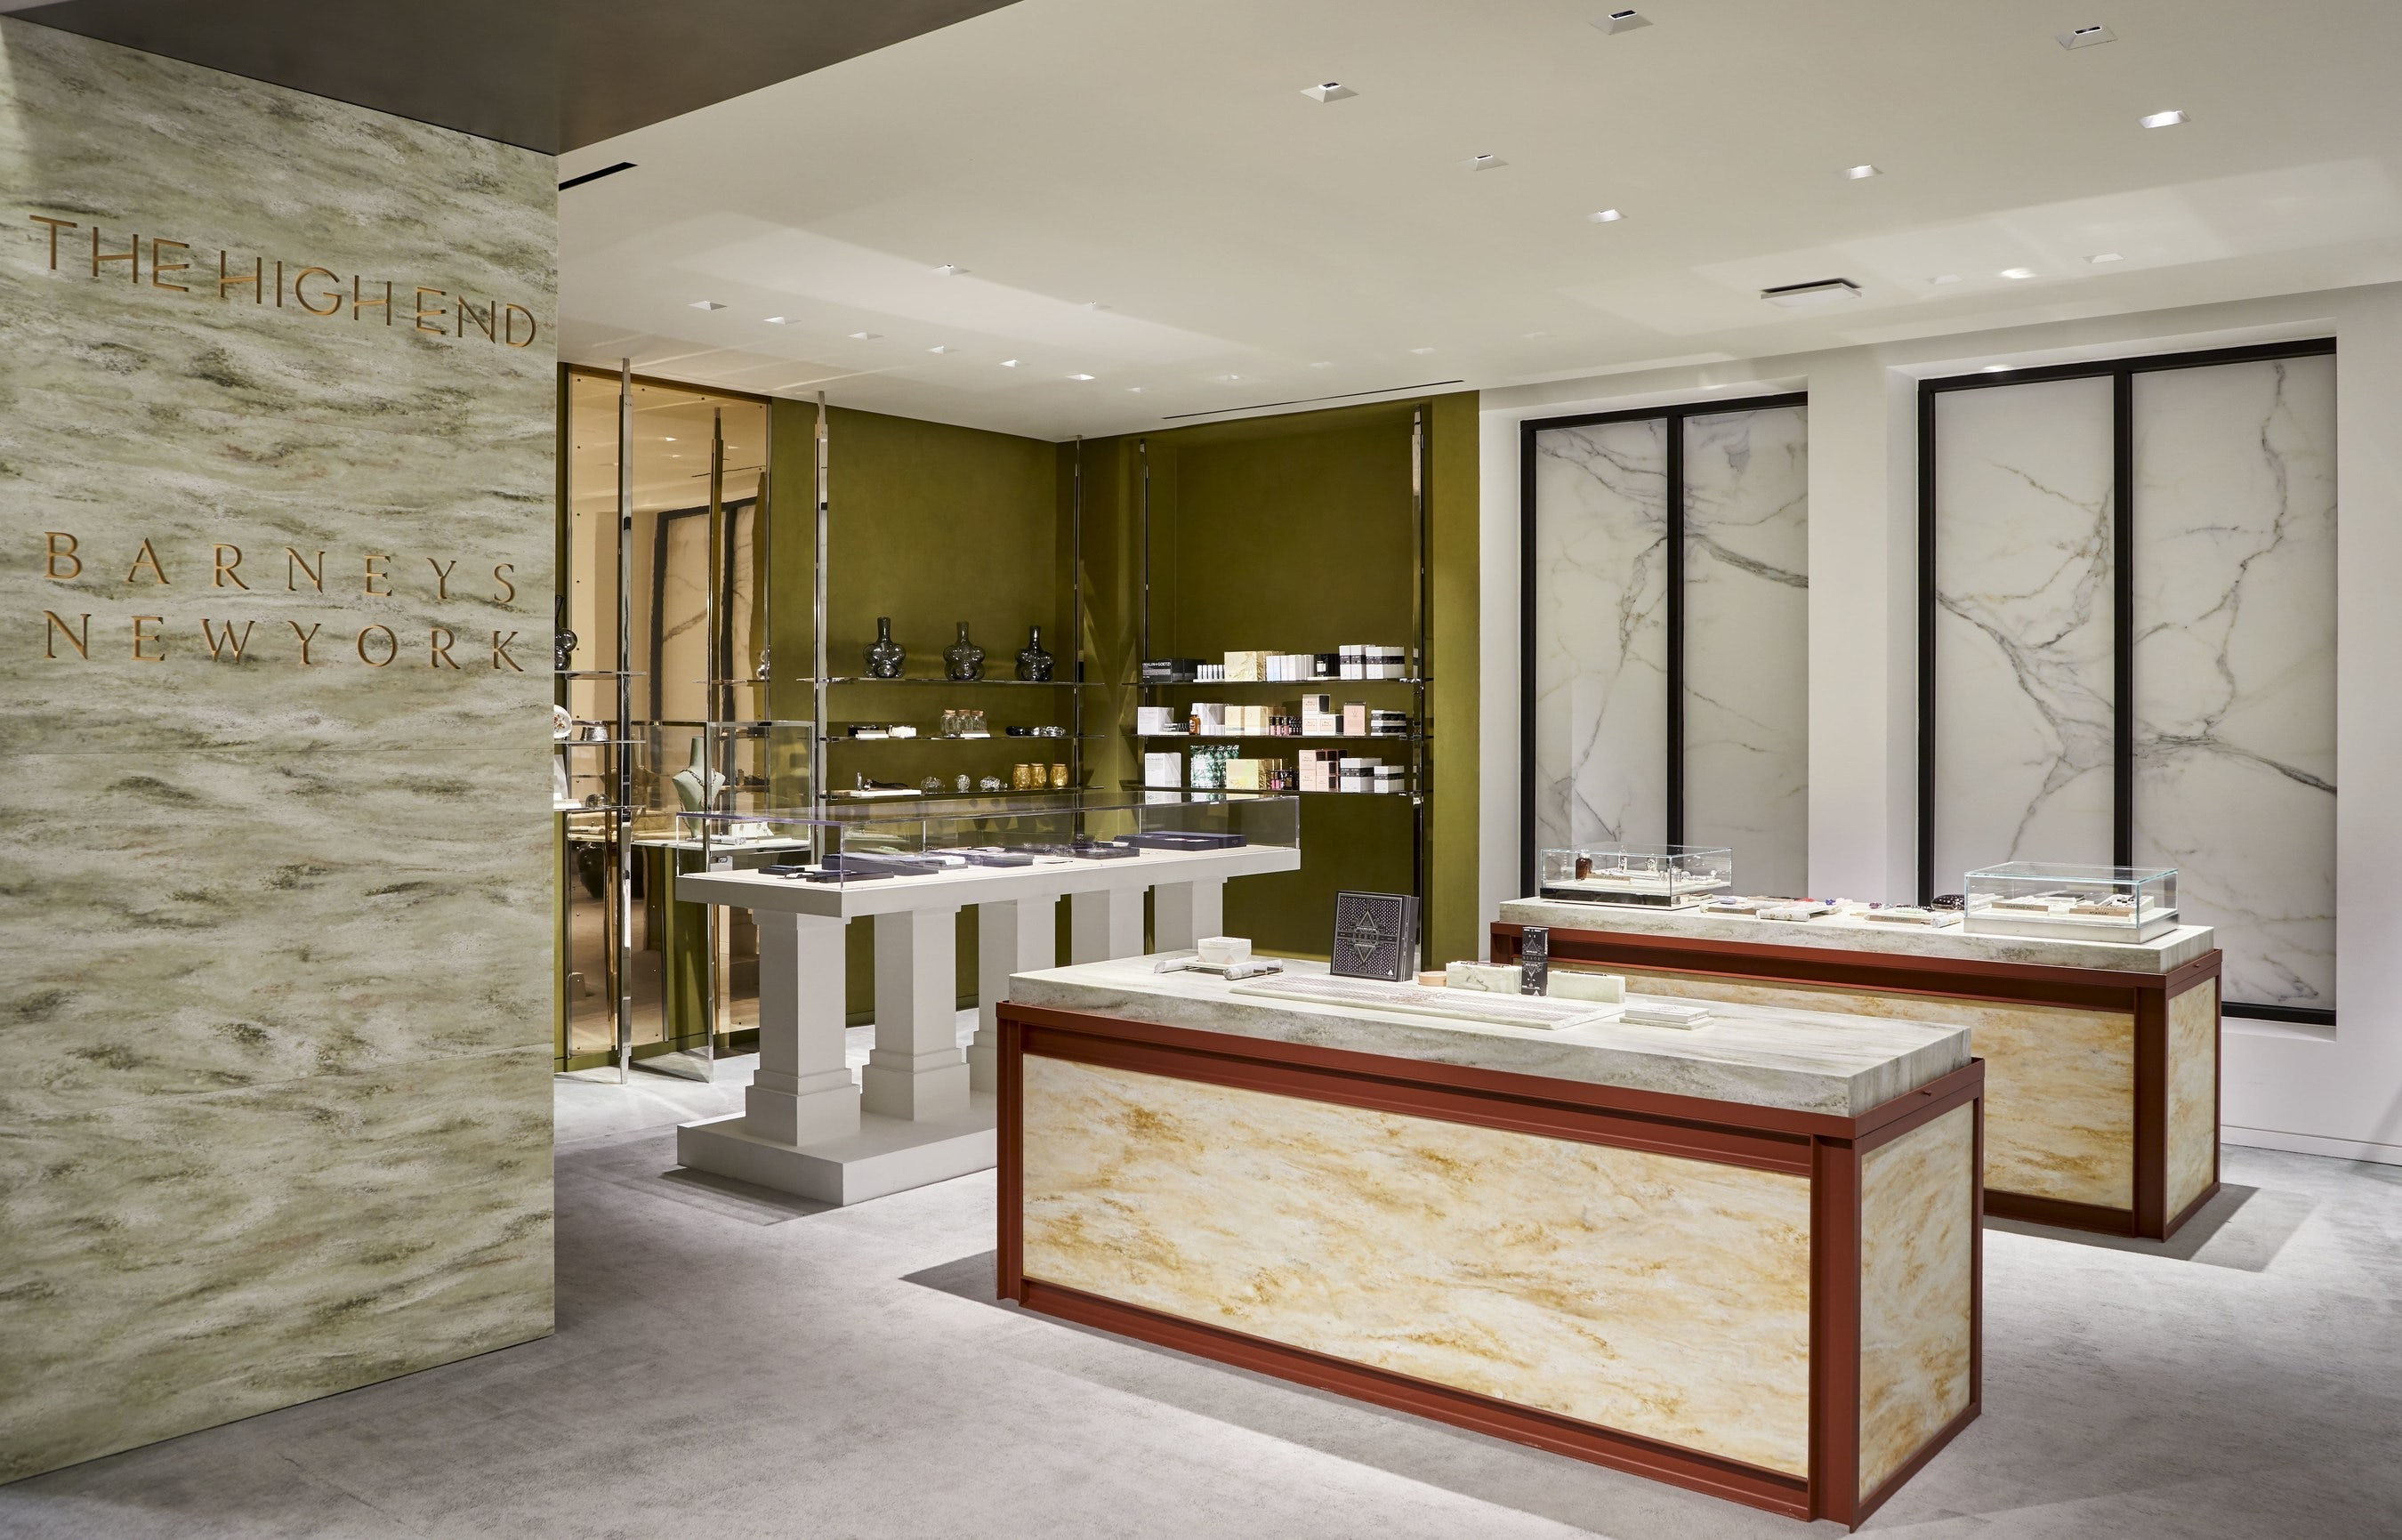 """Barneys New York opens """"The High End"""" luxury cannabis lifestyle shop 